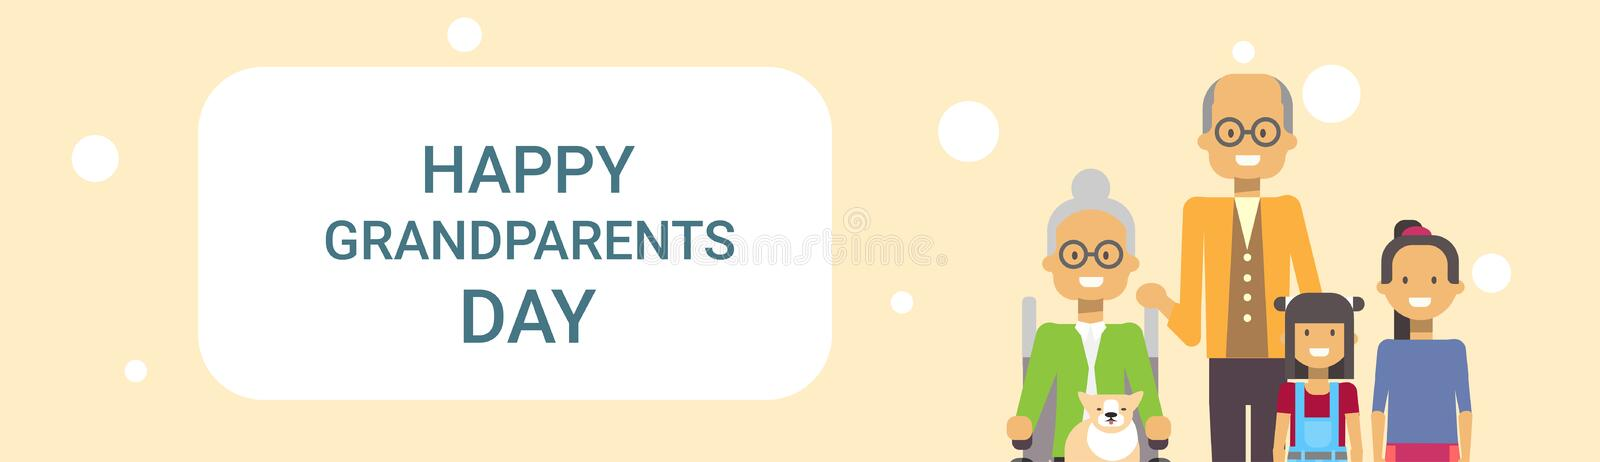 Happy Grandparents Day Greeting Card Banner Grandfather And Grandmother With Grandchildren Together. Vector Illustration royalty free illustration